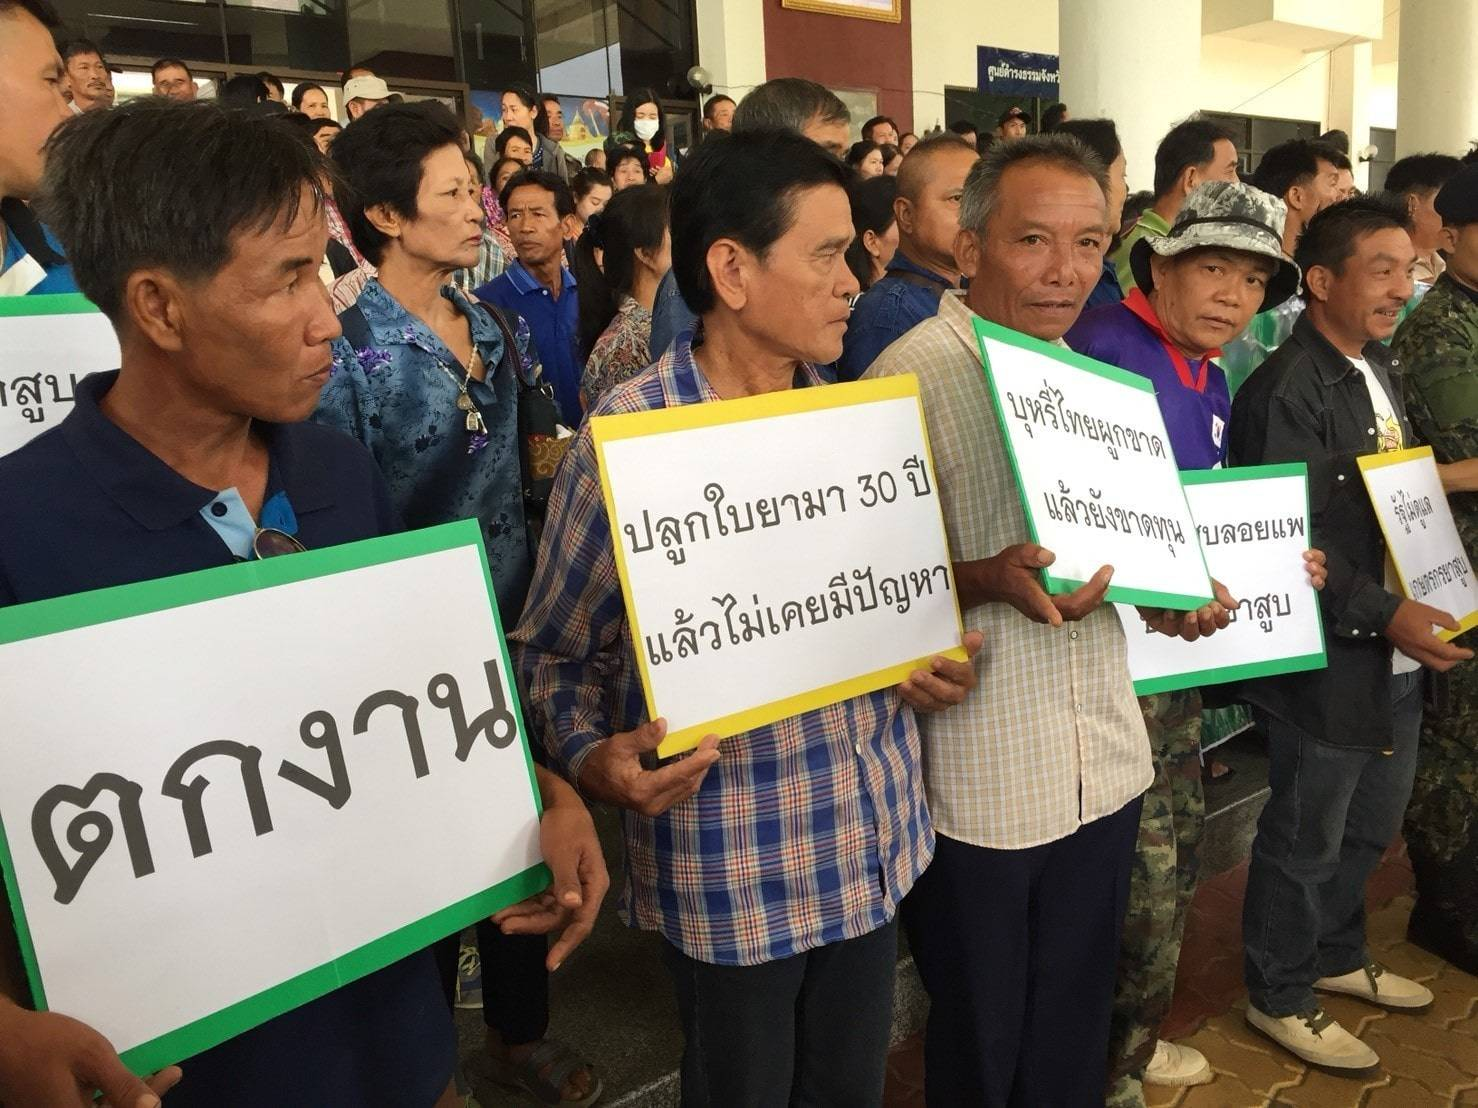 Tobacco farmers rally at Chiang Mai city hall | The Thaiger